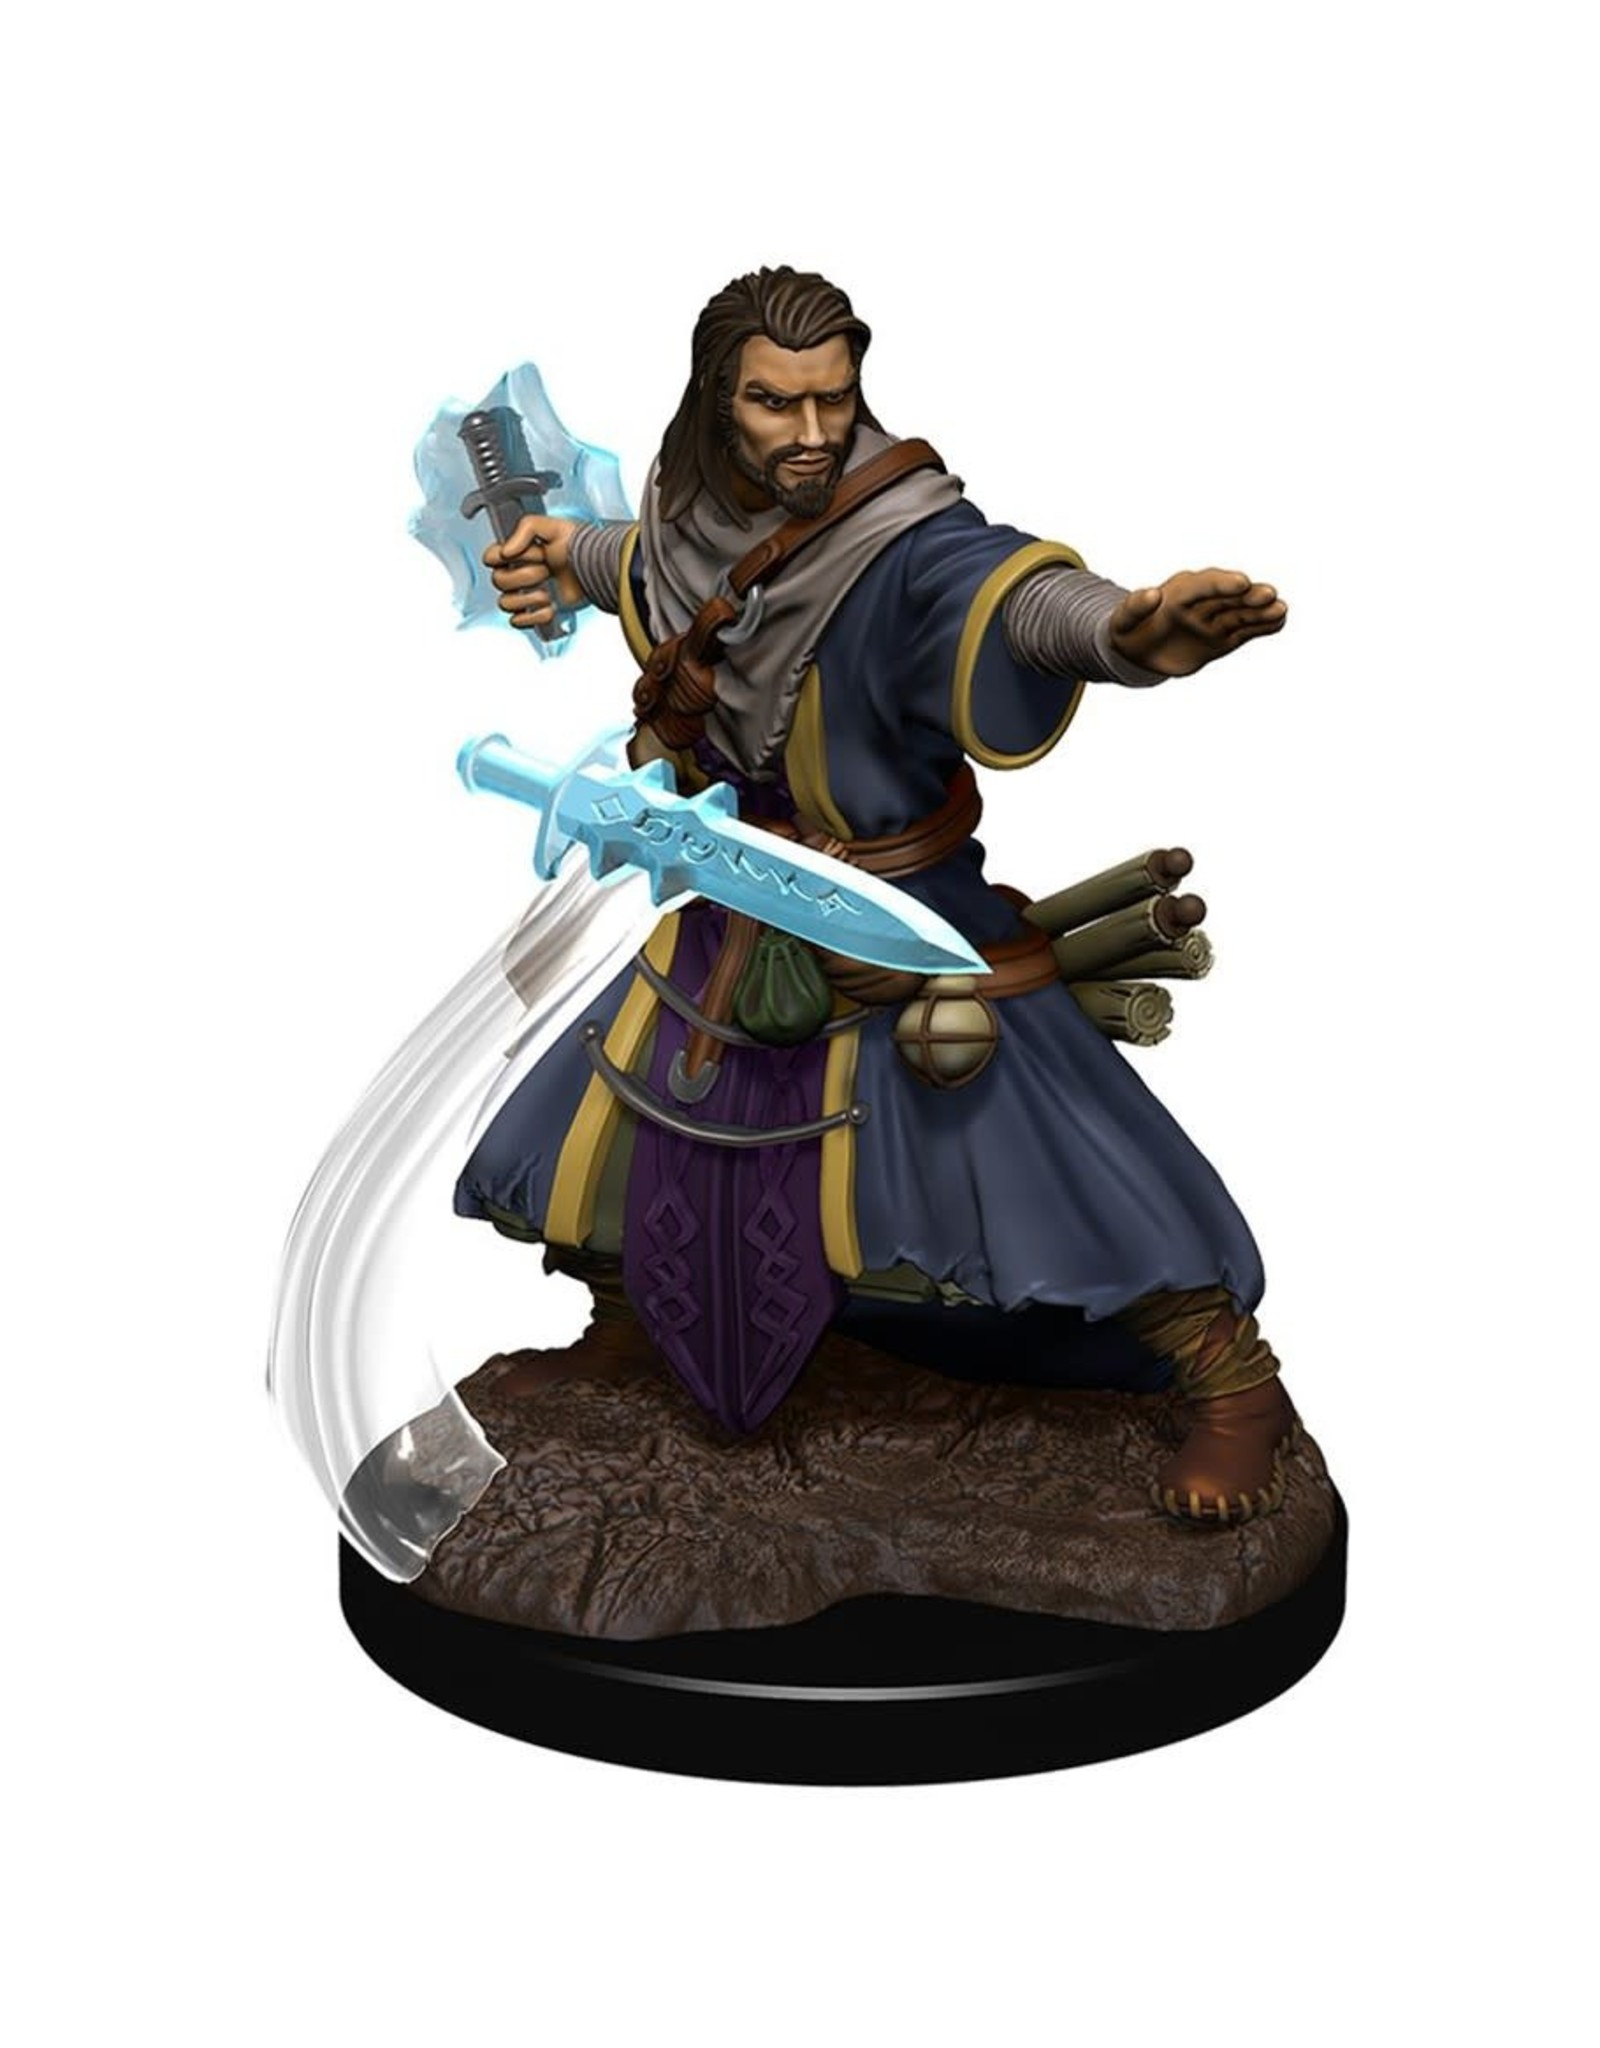 Wizkids Human Wizard Male W5 Icons of the Realms Premium Figures - D&D Minis